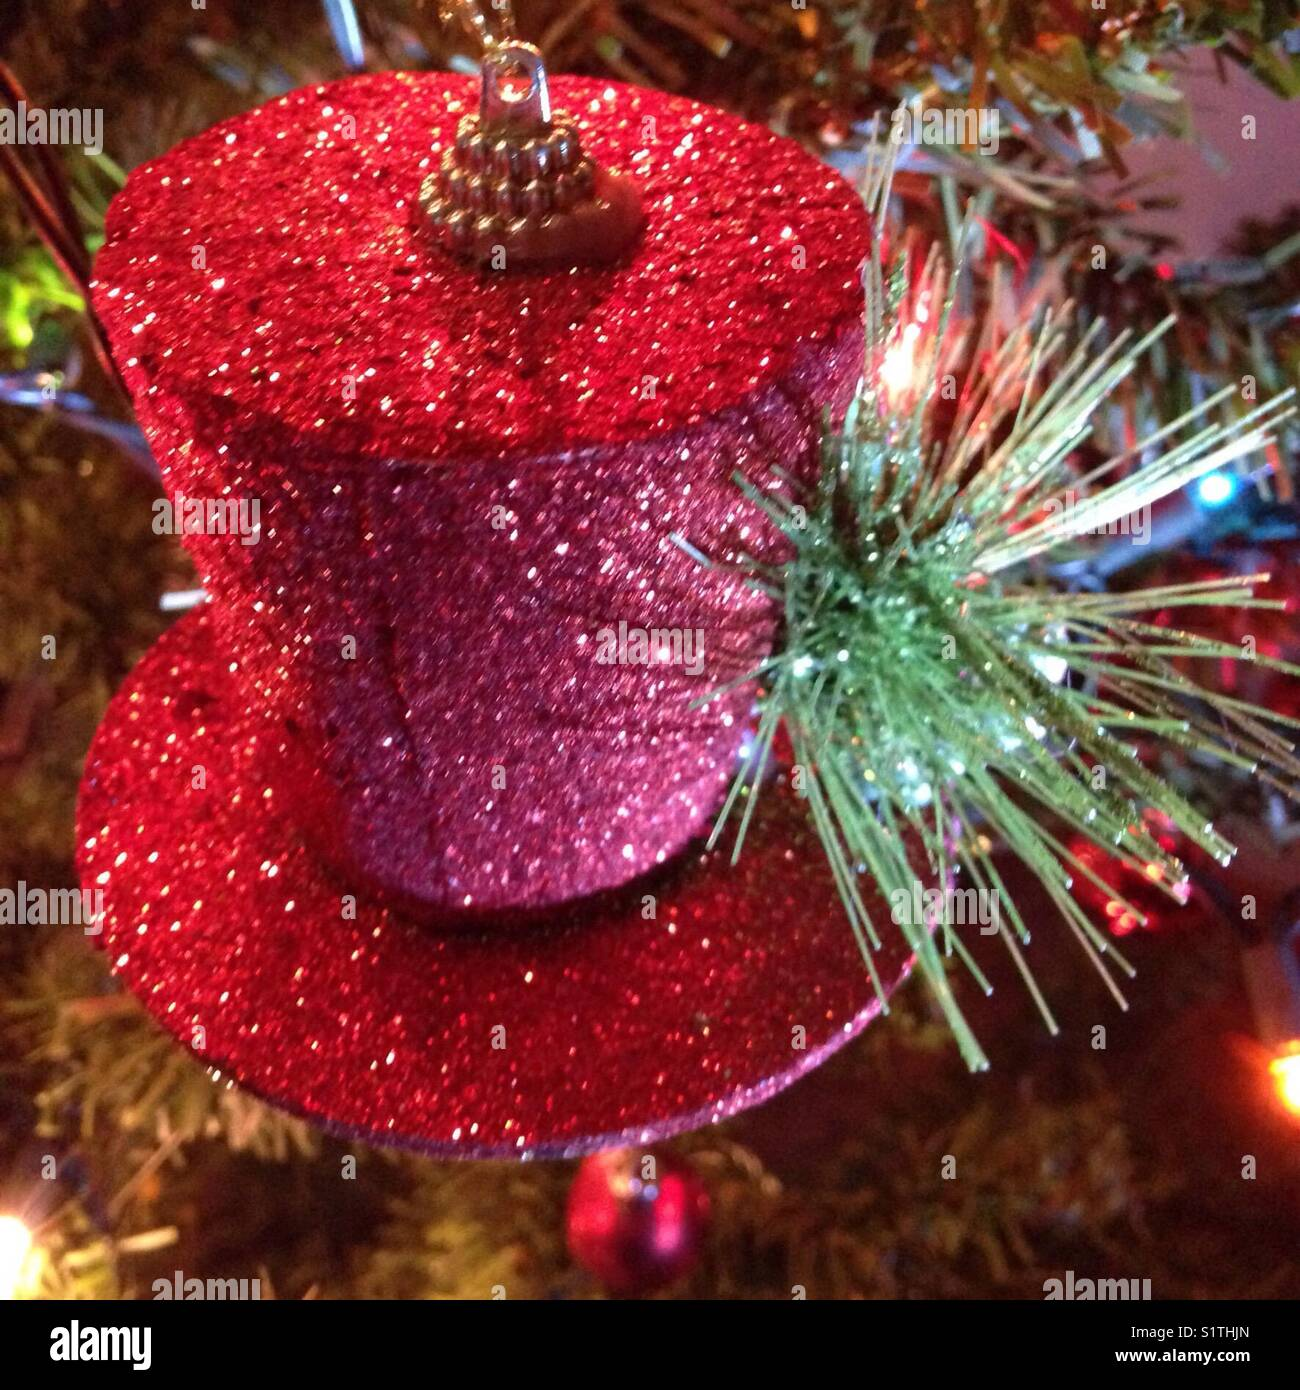 Christmas Top Hat Ornaments.Top Hat Christmas Tree Ornament Stock Photo 310941981 Alamy